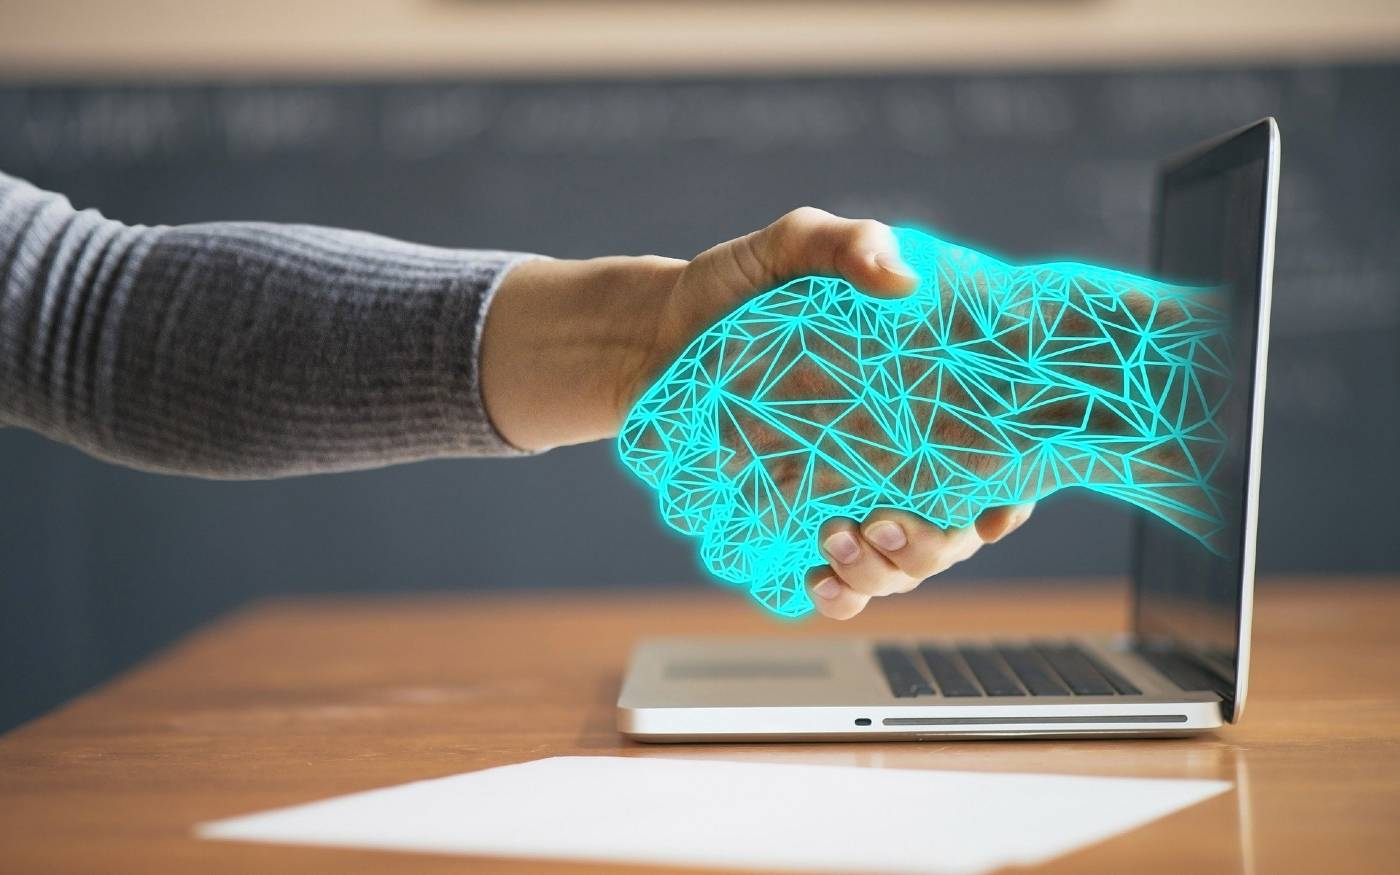 Human hand shaking an AI hand coming out of a laptop